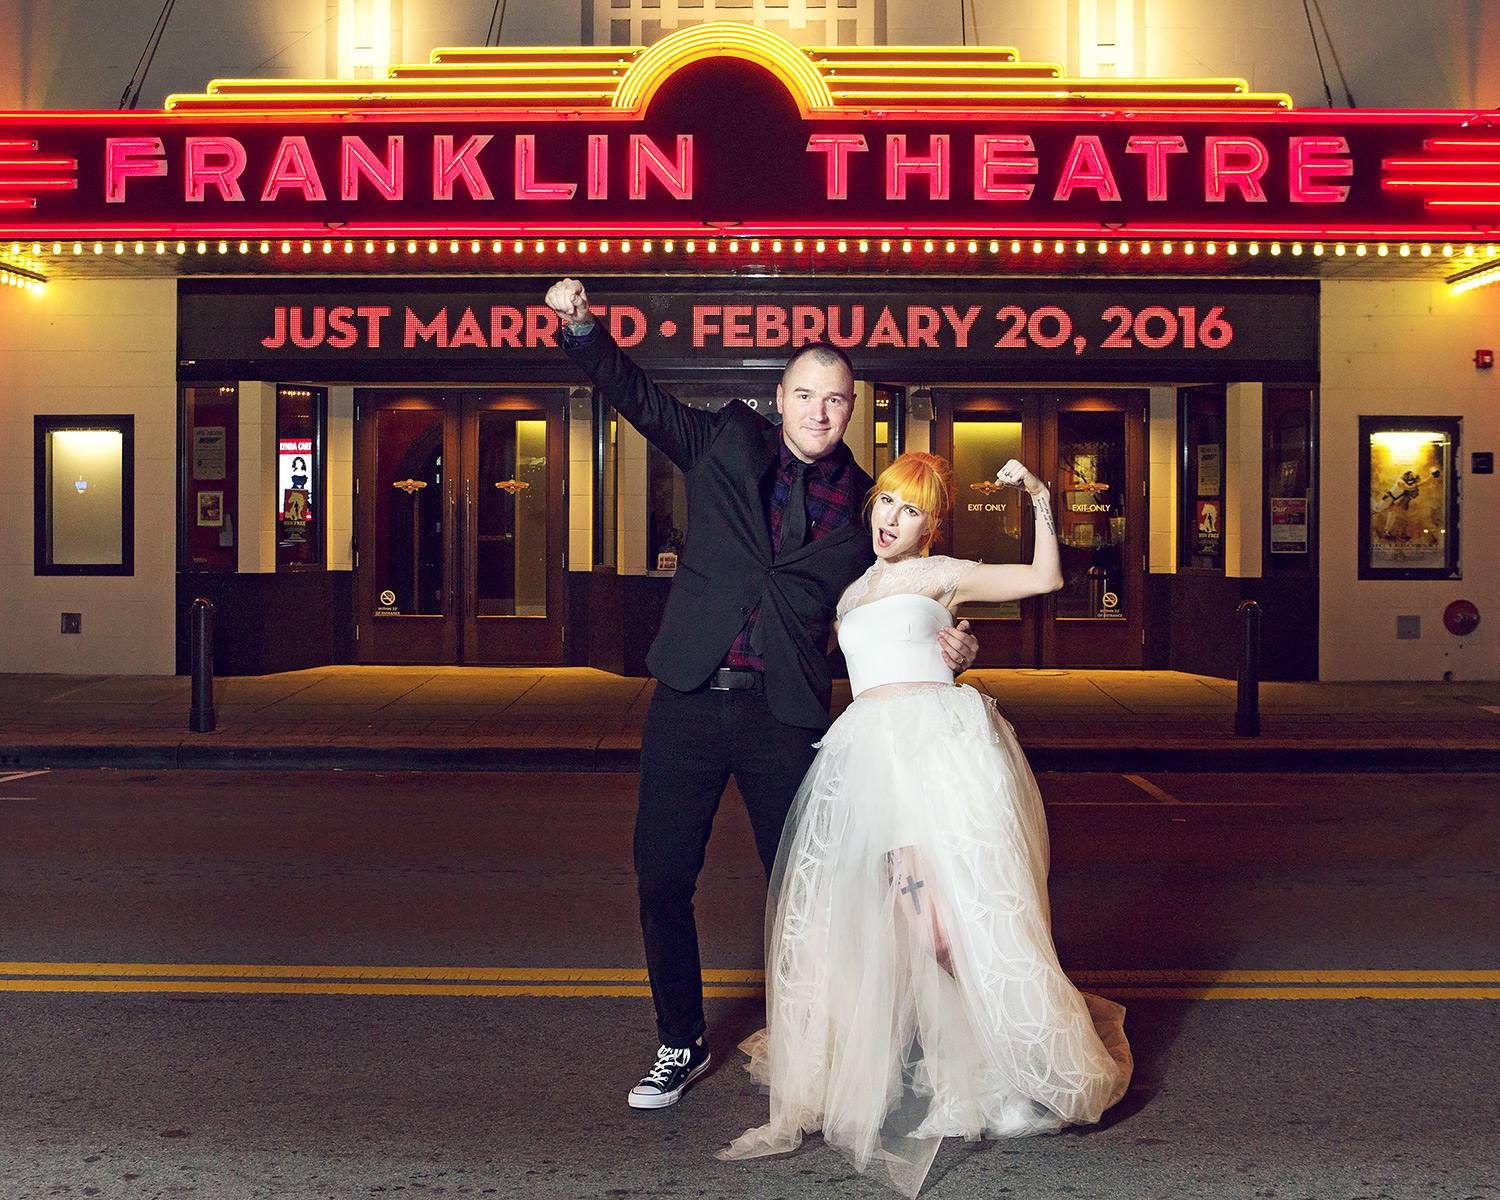 Chad Gilbert and Hayley Williams wedding